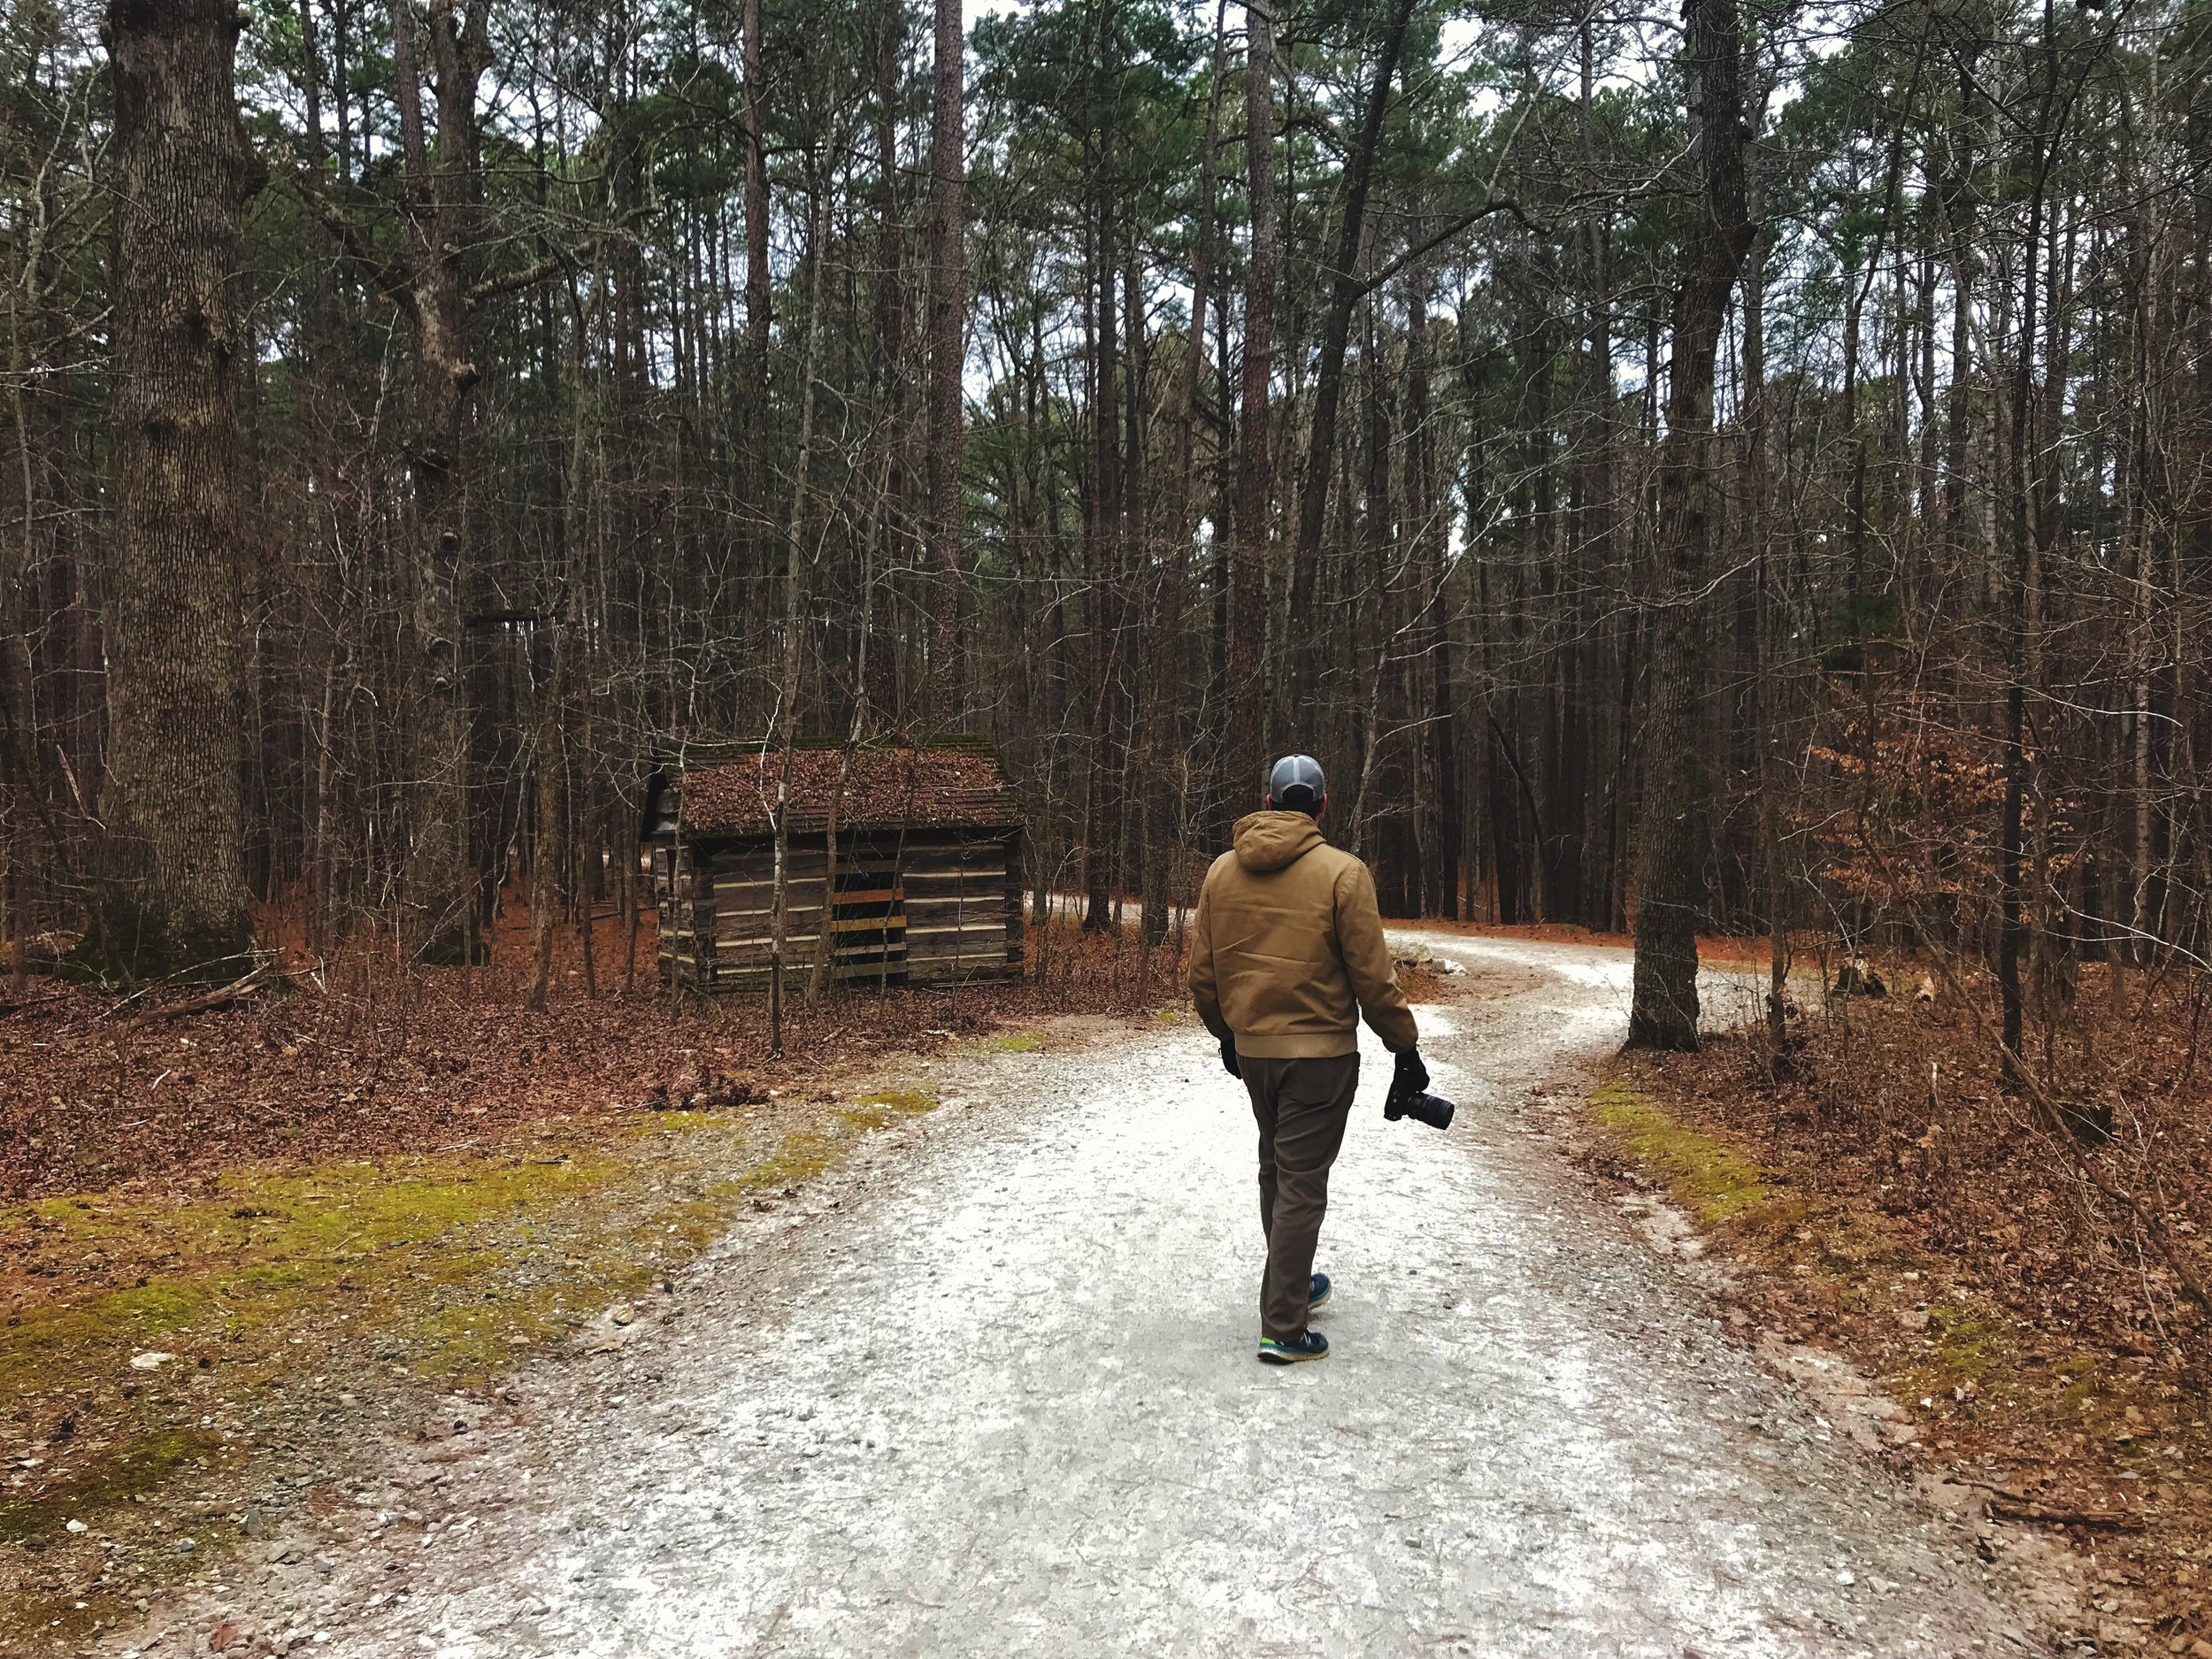 Walking up the trail in William B. Umstead State Park, there is a really cute little cabin.